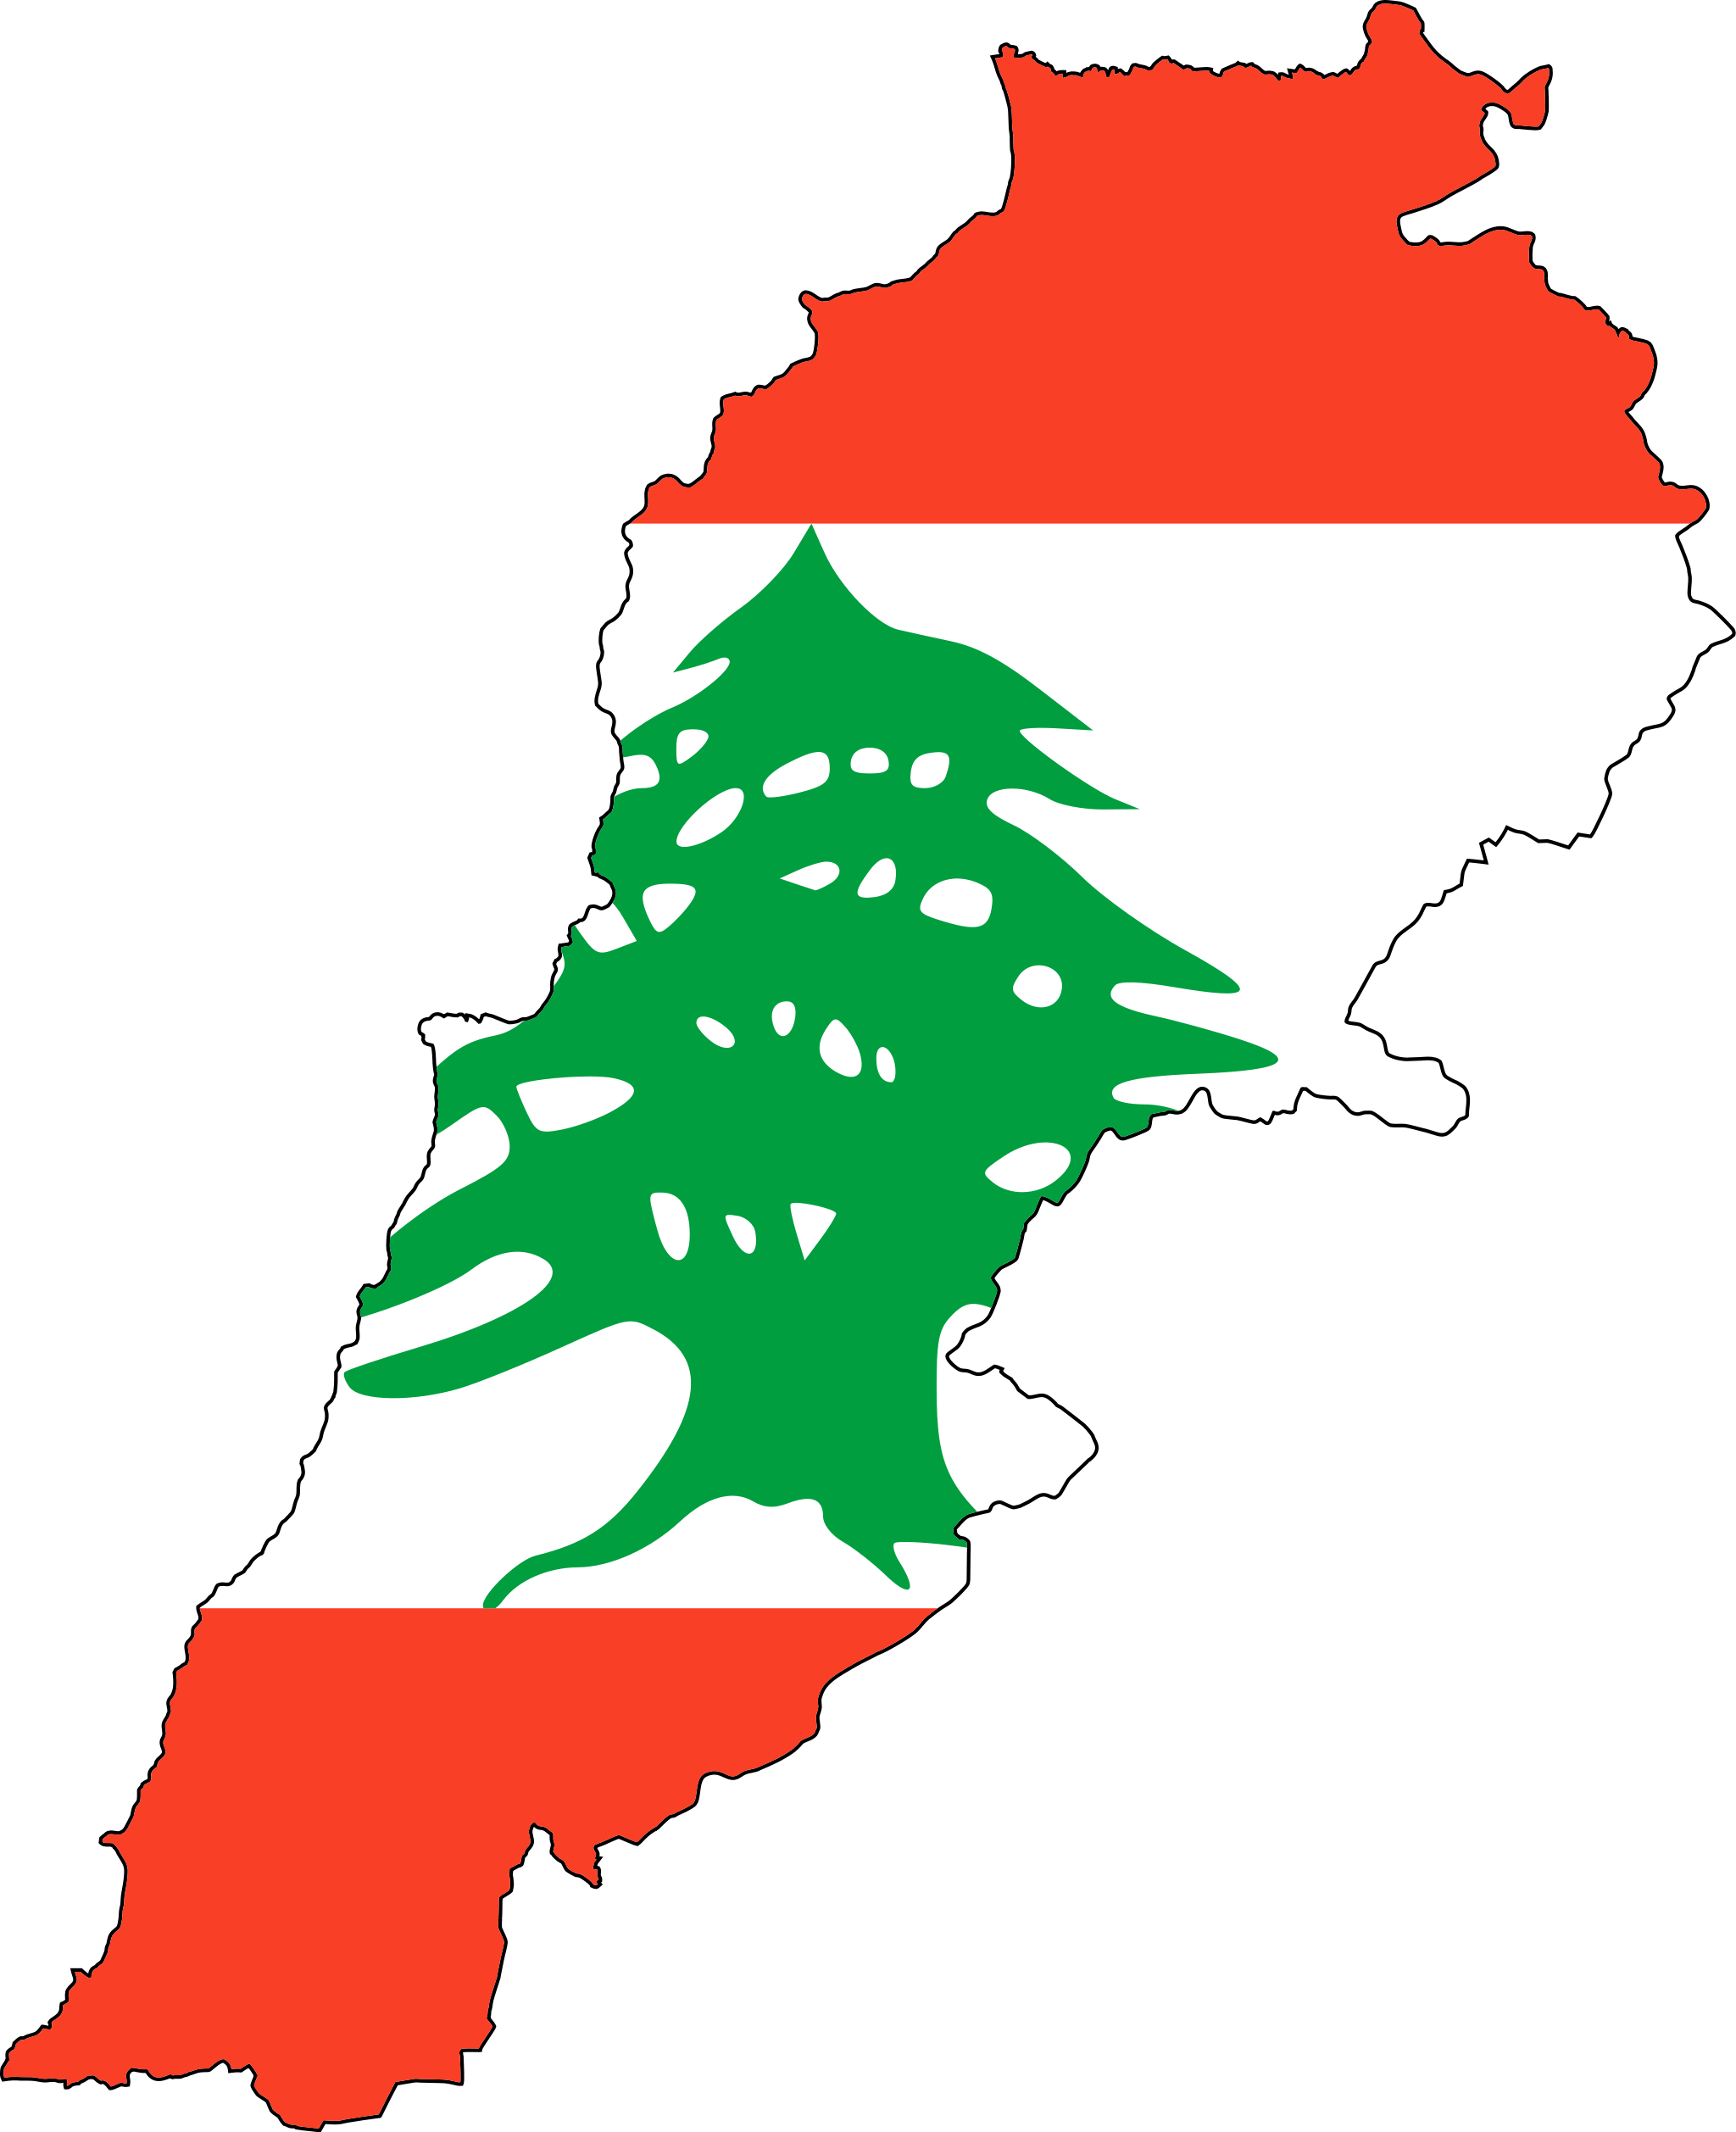 lebanon_flag_map